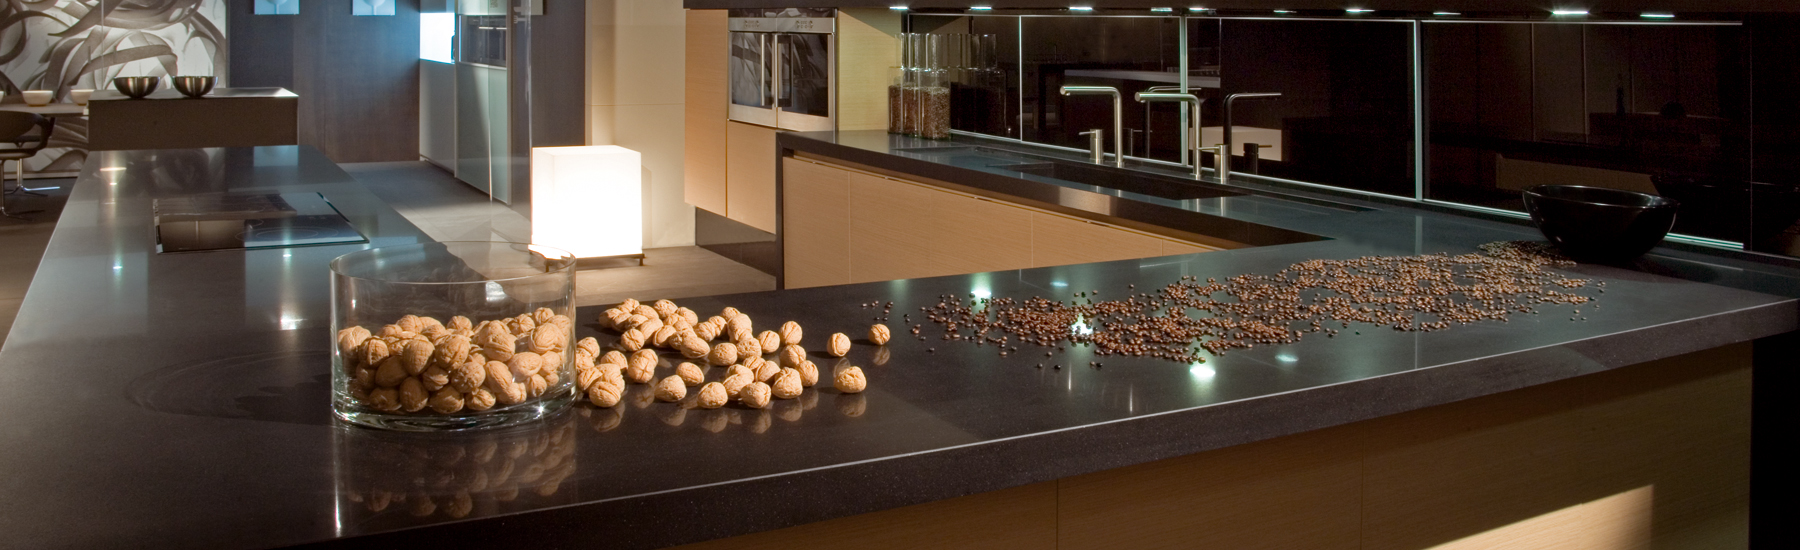 Gem Brand Jet black quartz countertops